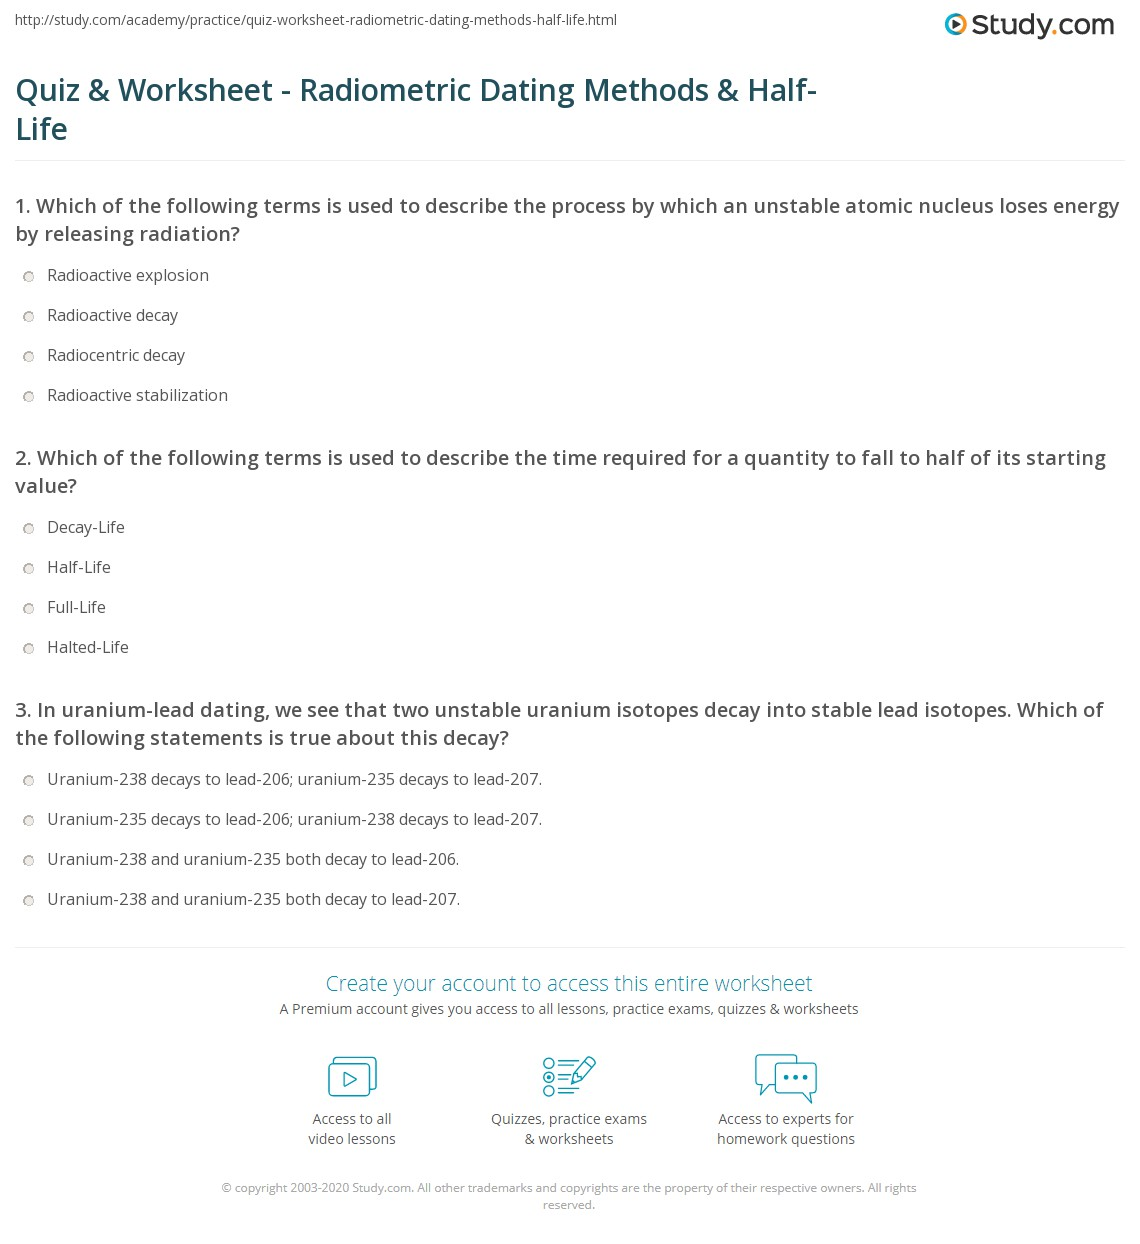 Quiz Worksheet Radiometric Dating Methods Half Life Study Com